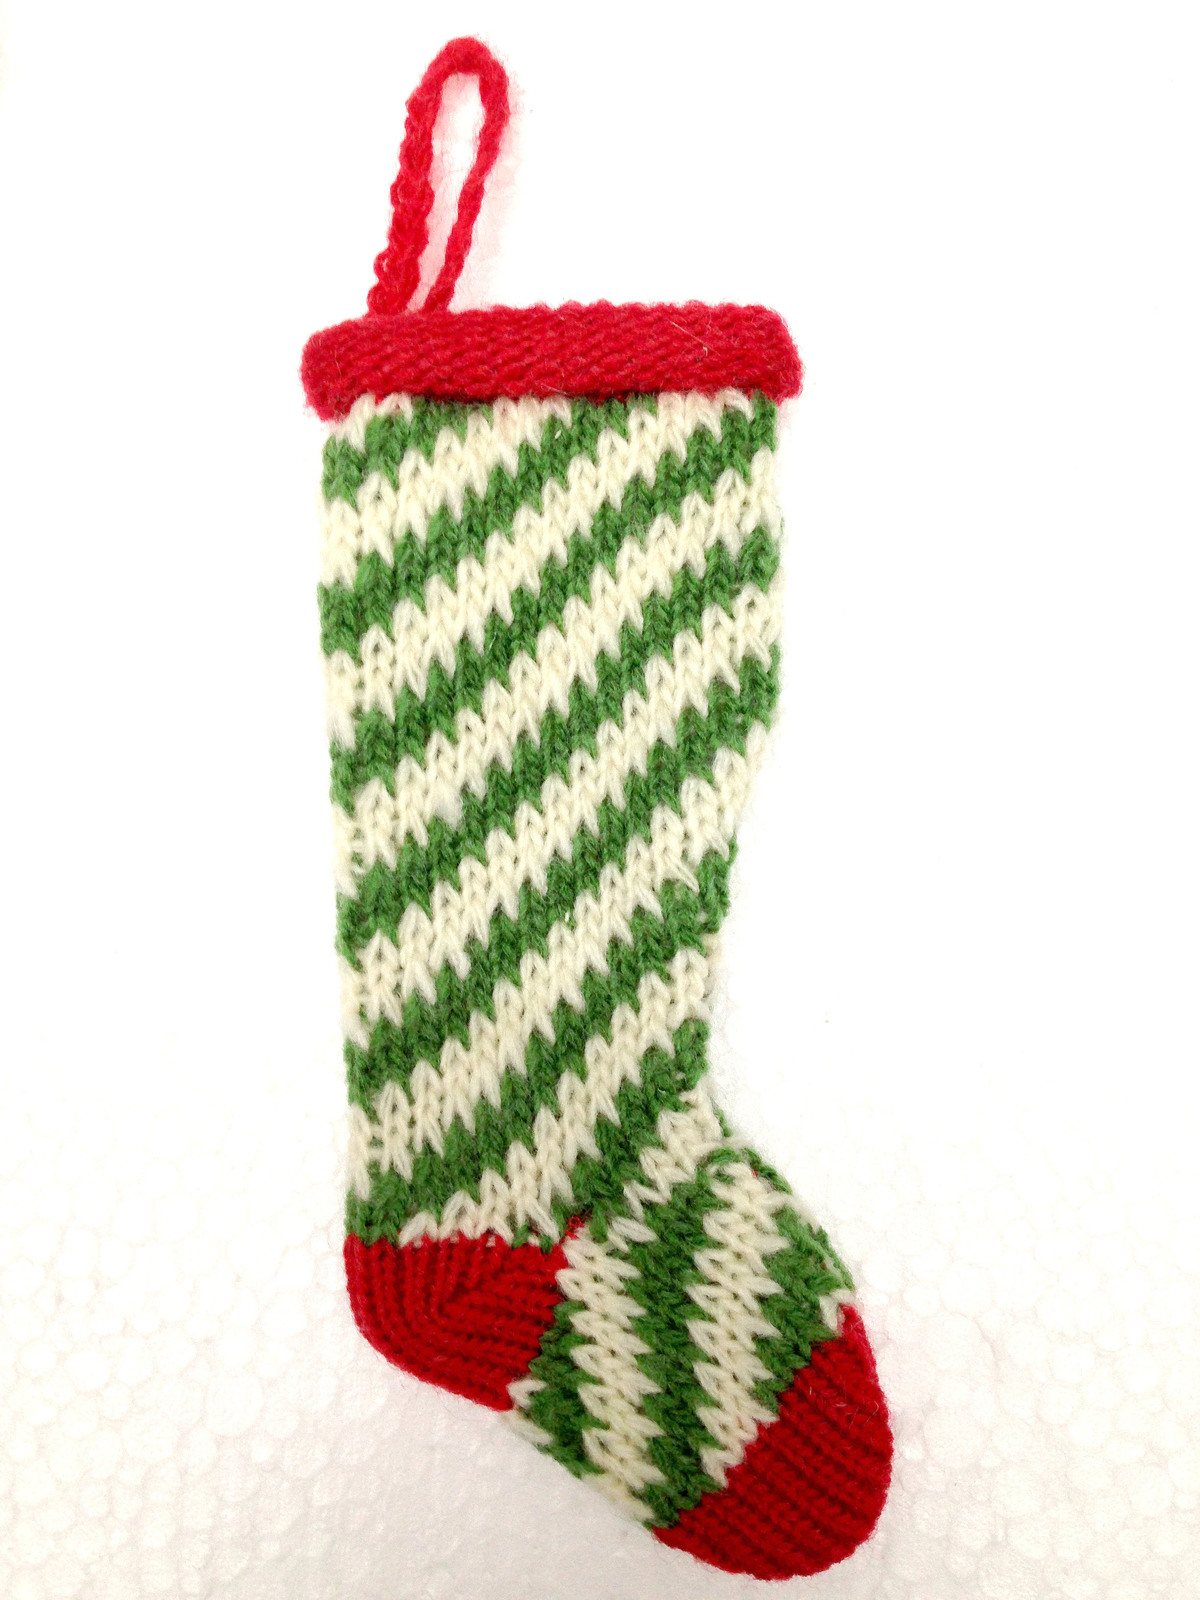 Knitted Christmas Decorations To Buy : Christmas ornaments decoration knit sweater